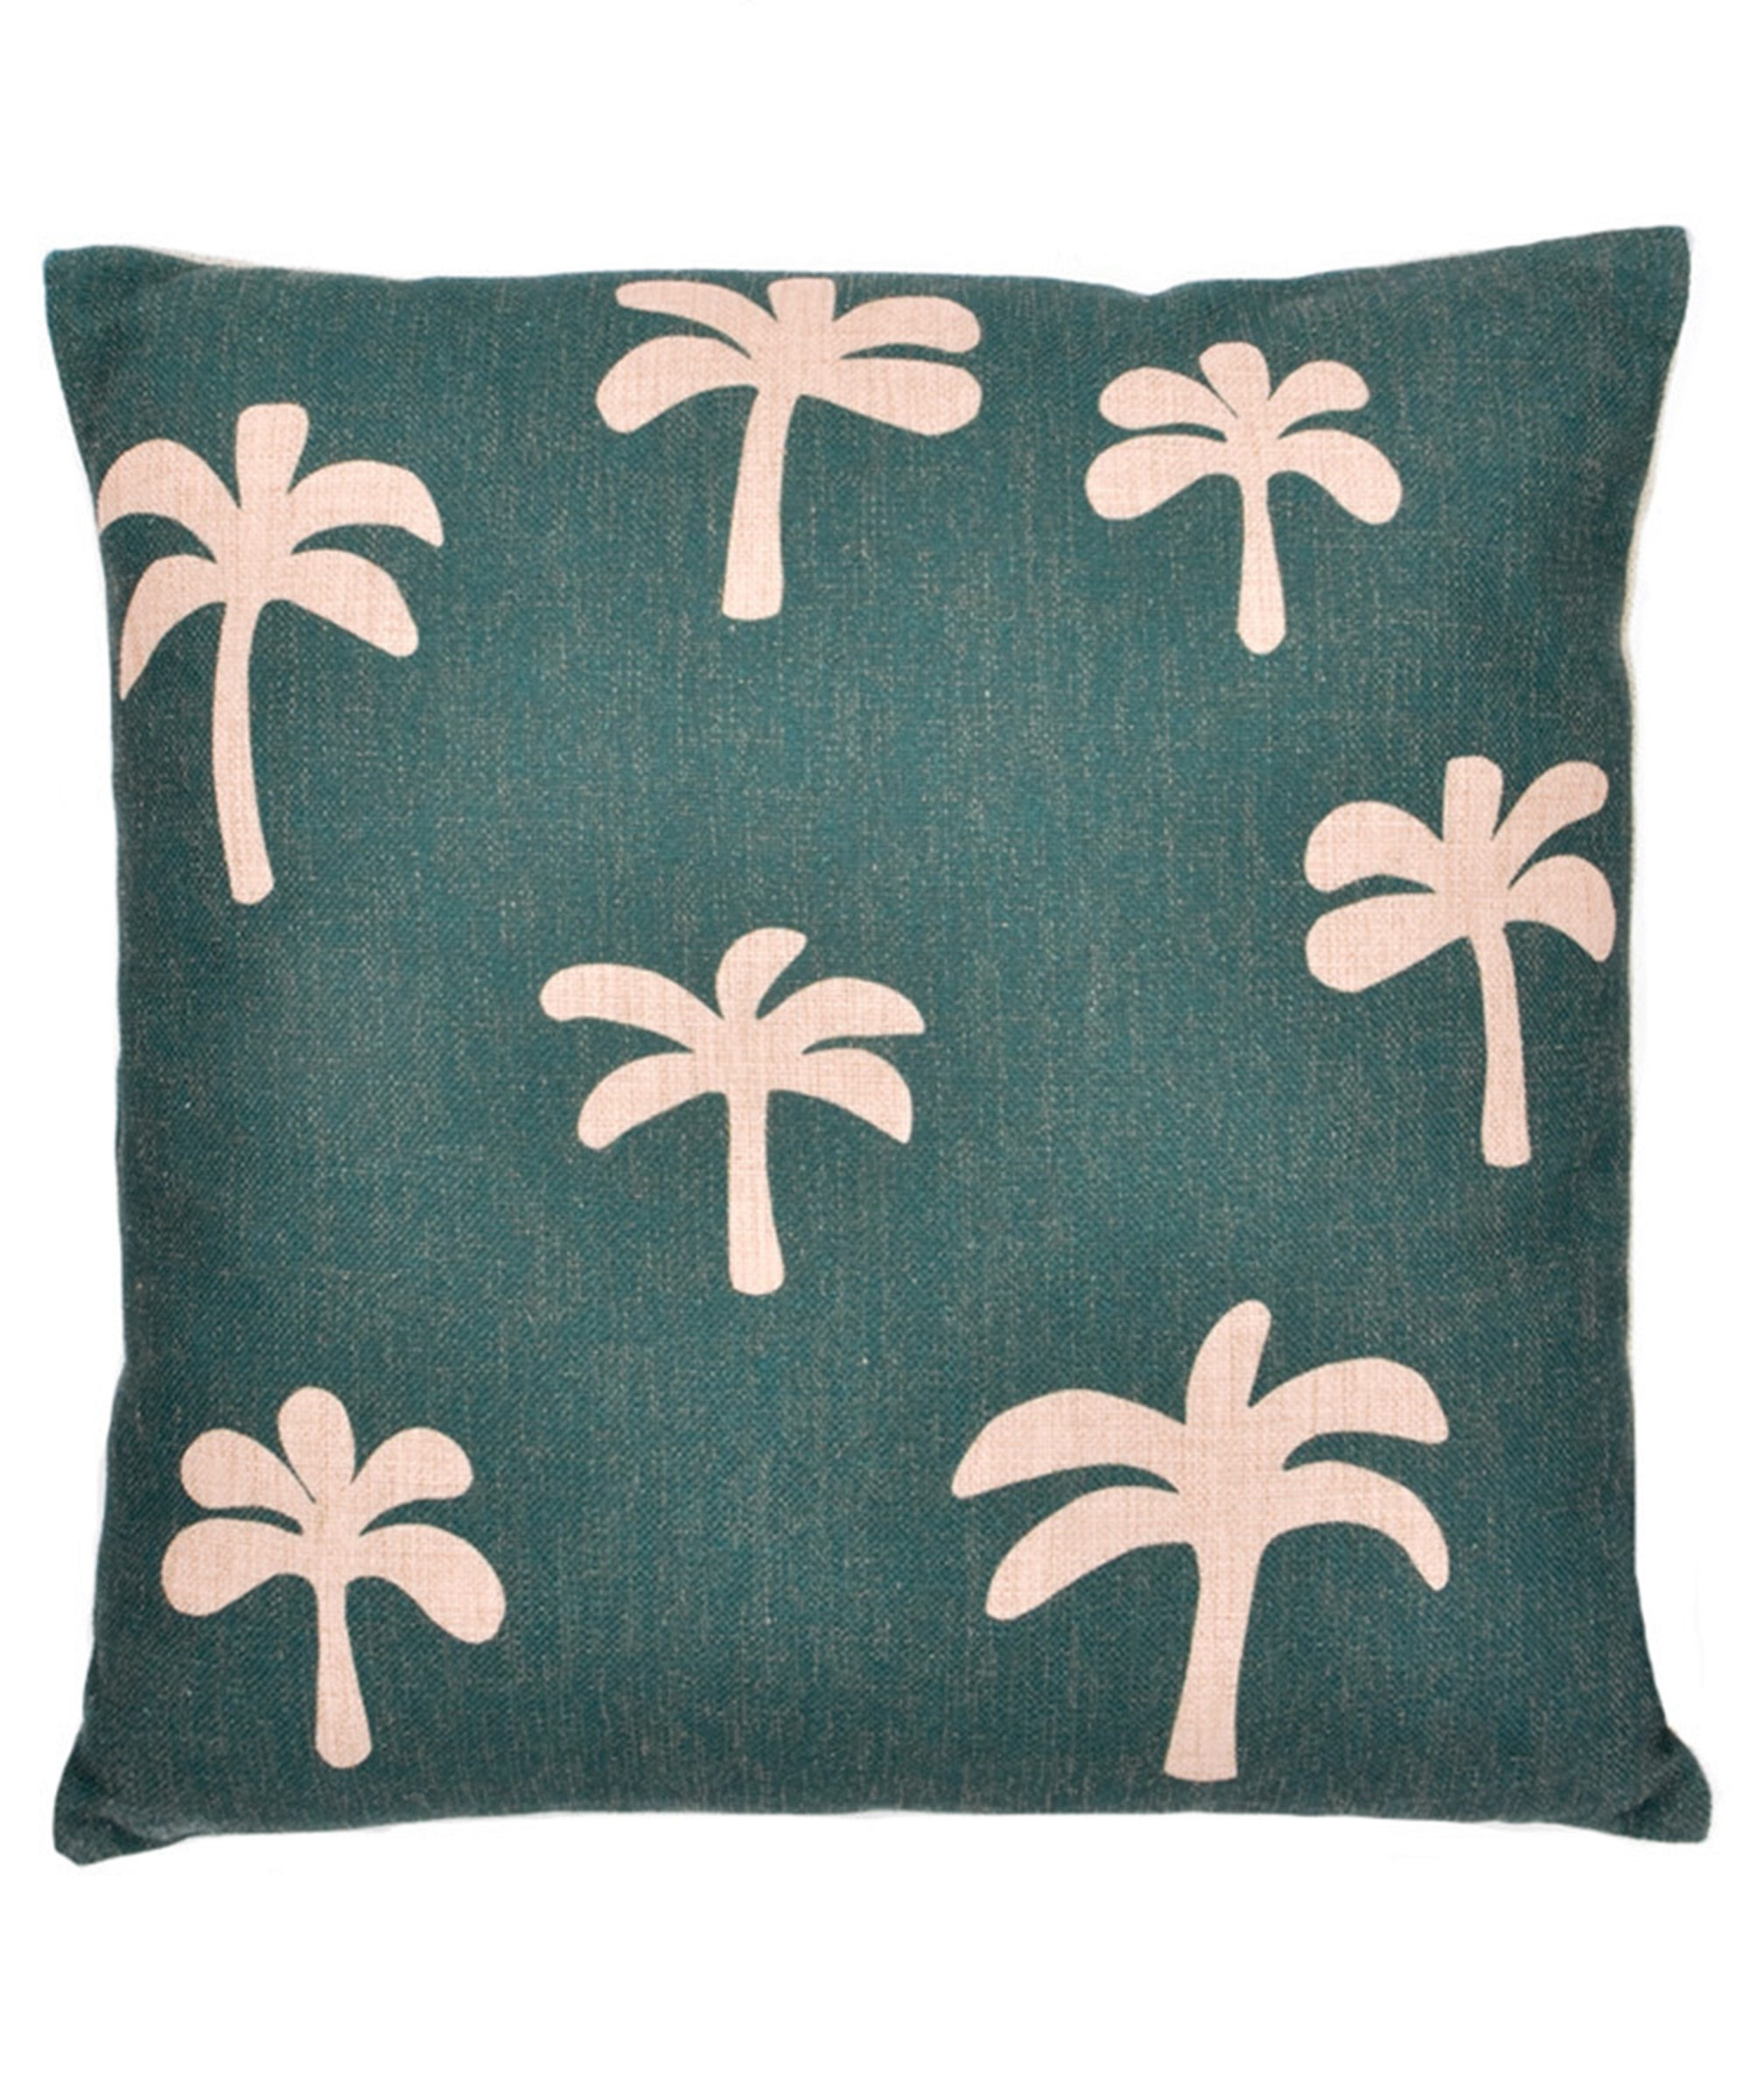 Decorative Pillow Guide : Best Decorative Pillows - Throw Pillow Guide